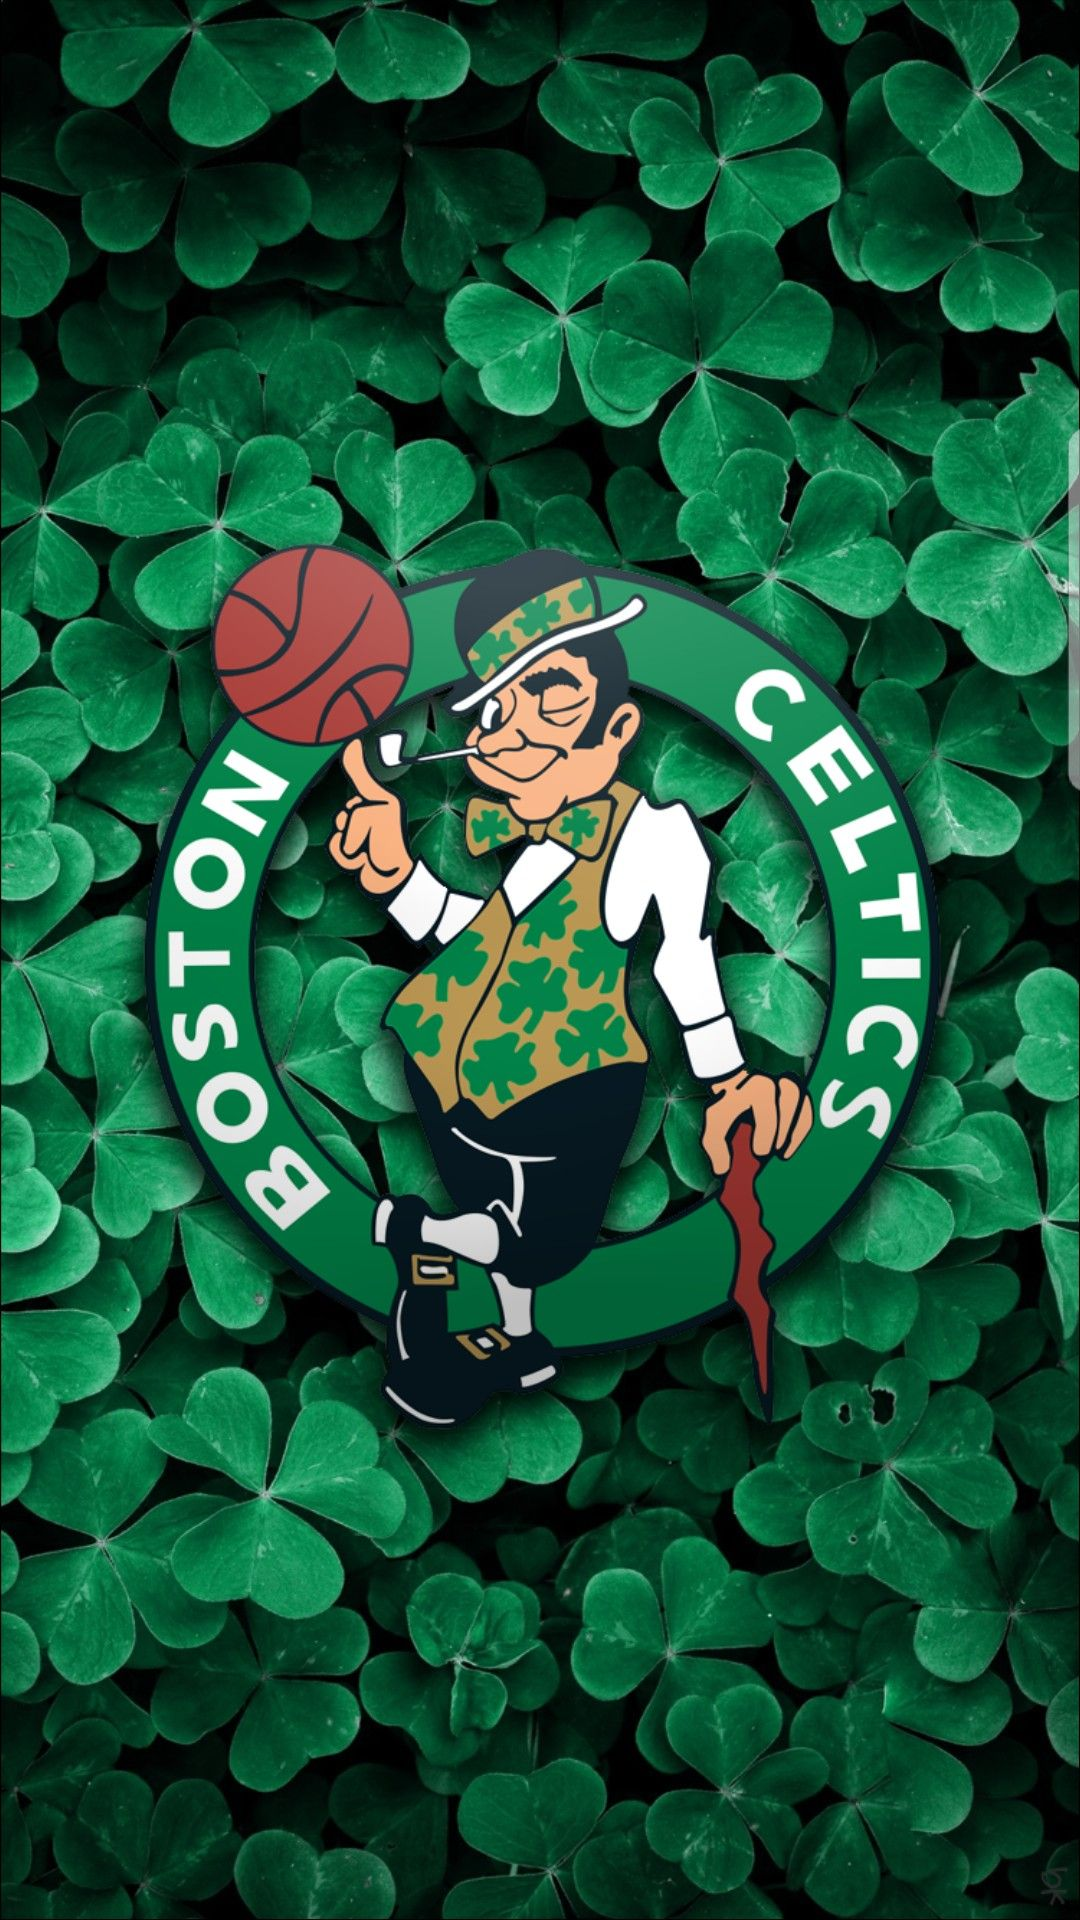 Pin by Archie Douglas on SPORTZ WALLPAPERZ Celtics